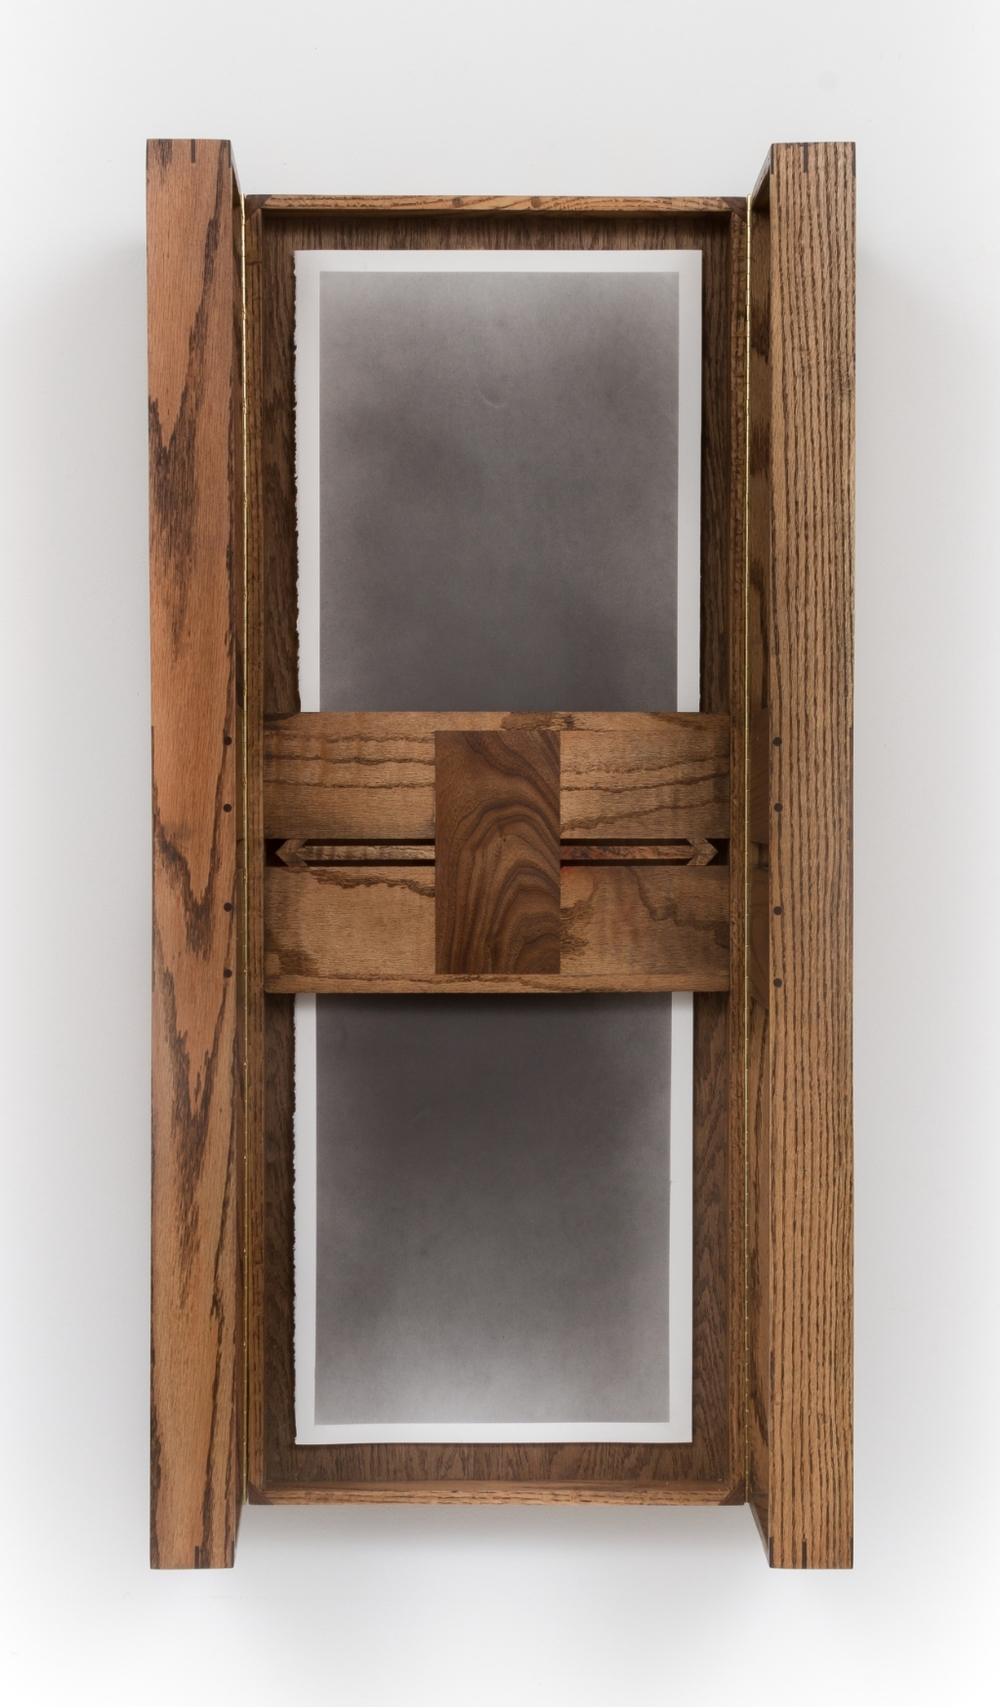 Untitled (Altar No. 6), 2015, Graphite on paper in artist made oak frame with walnut inlay, Partially open: 106.68 x 54.61 x 27.3 cm, Image courtesy of the artist and Monique Meloche Gallery, Chicago